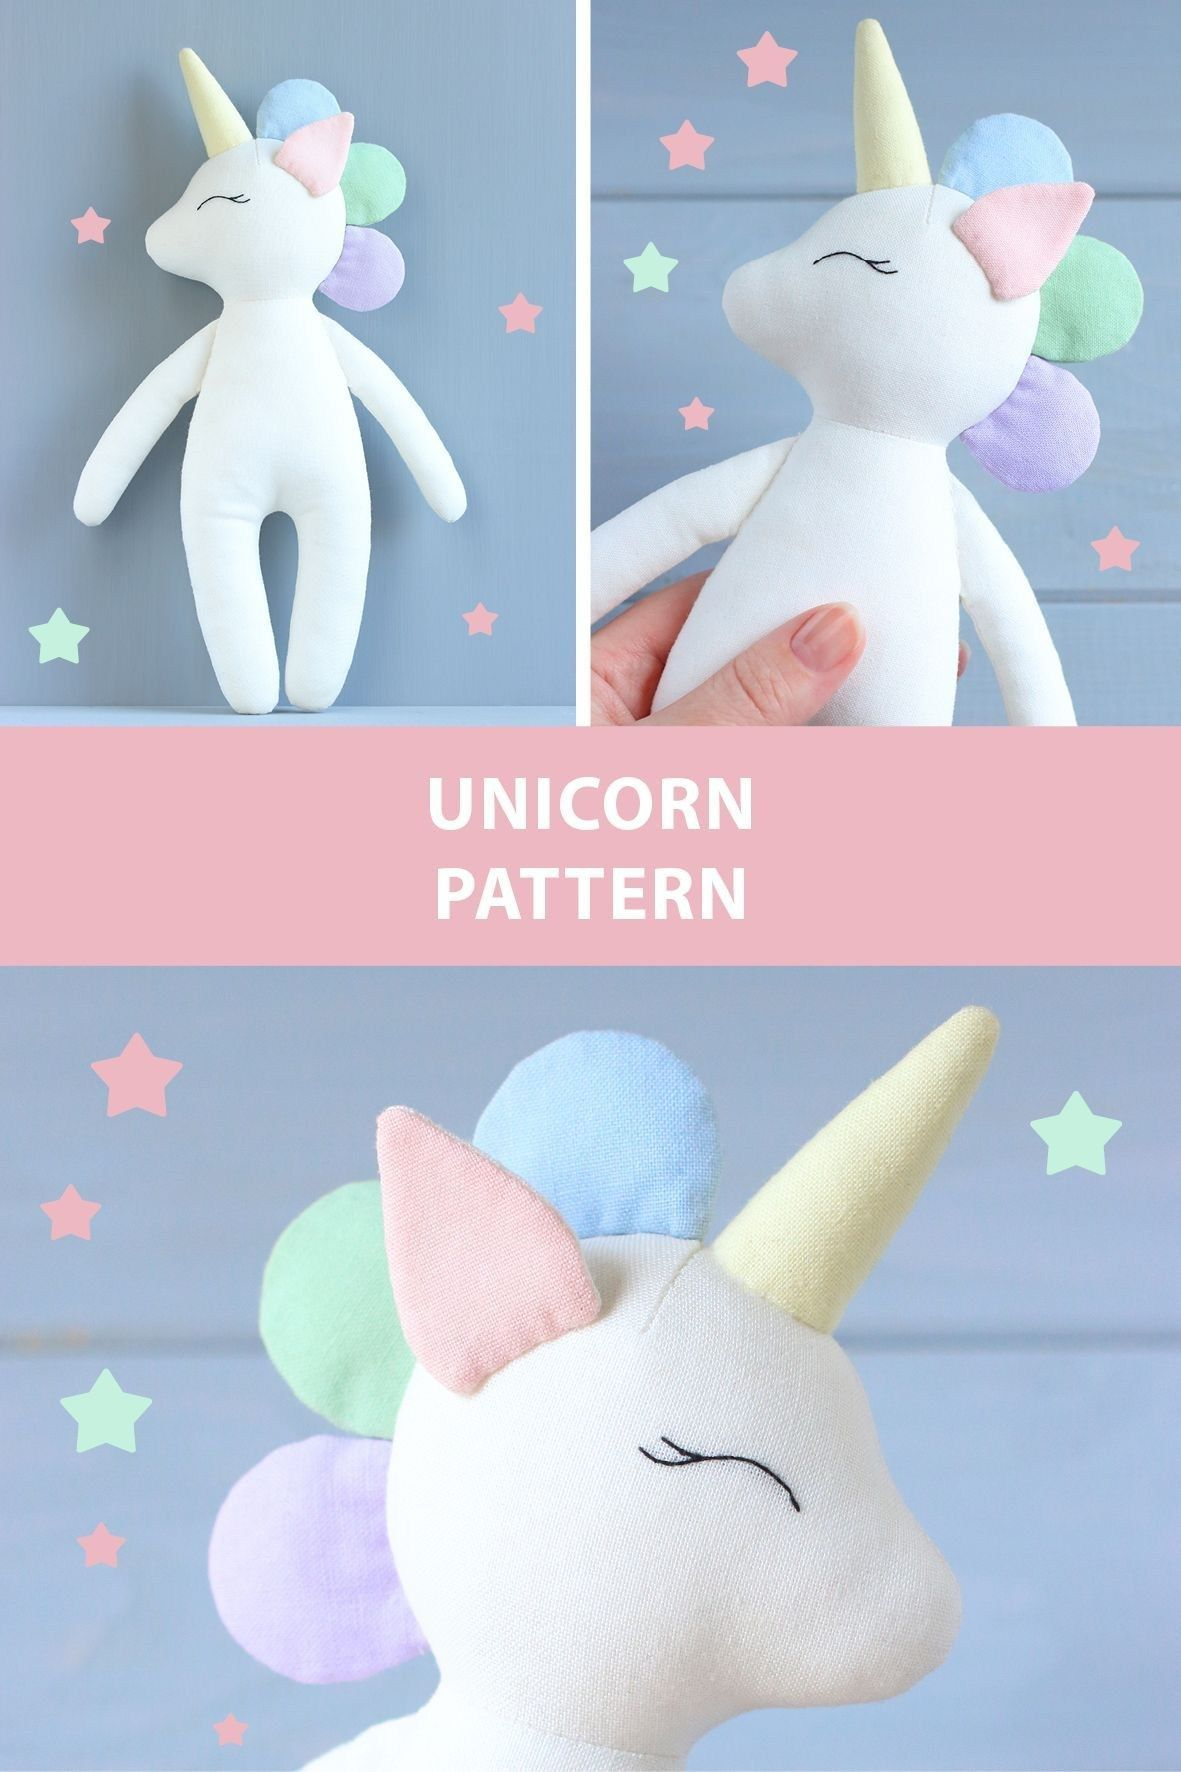 25 Elegant Picture Of Doll Sewing Patterns Instructionstodollpatterns Doll Sewing Patterns Pdf Unicorn Pat Diy Unicorn Doll Doll Sewing Patterns Unicorn Doll